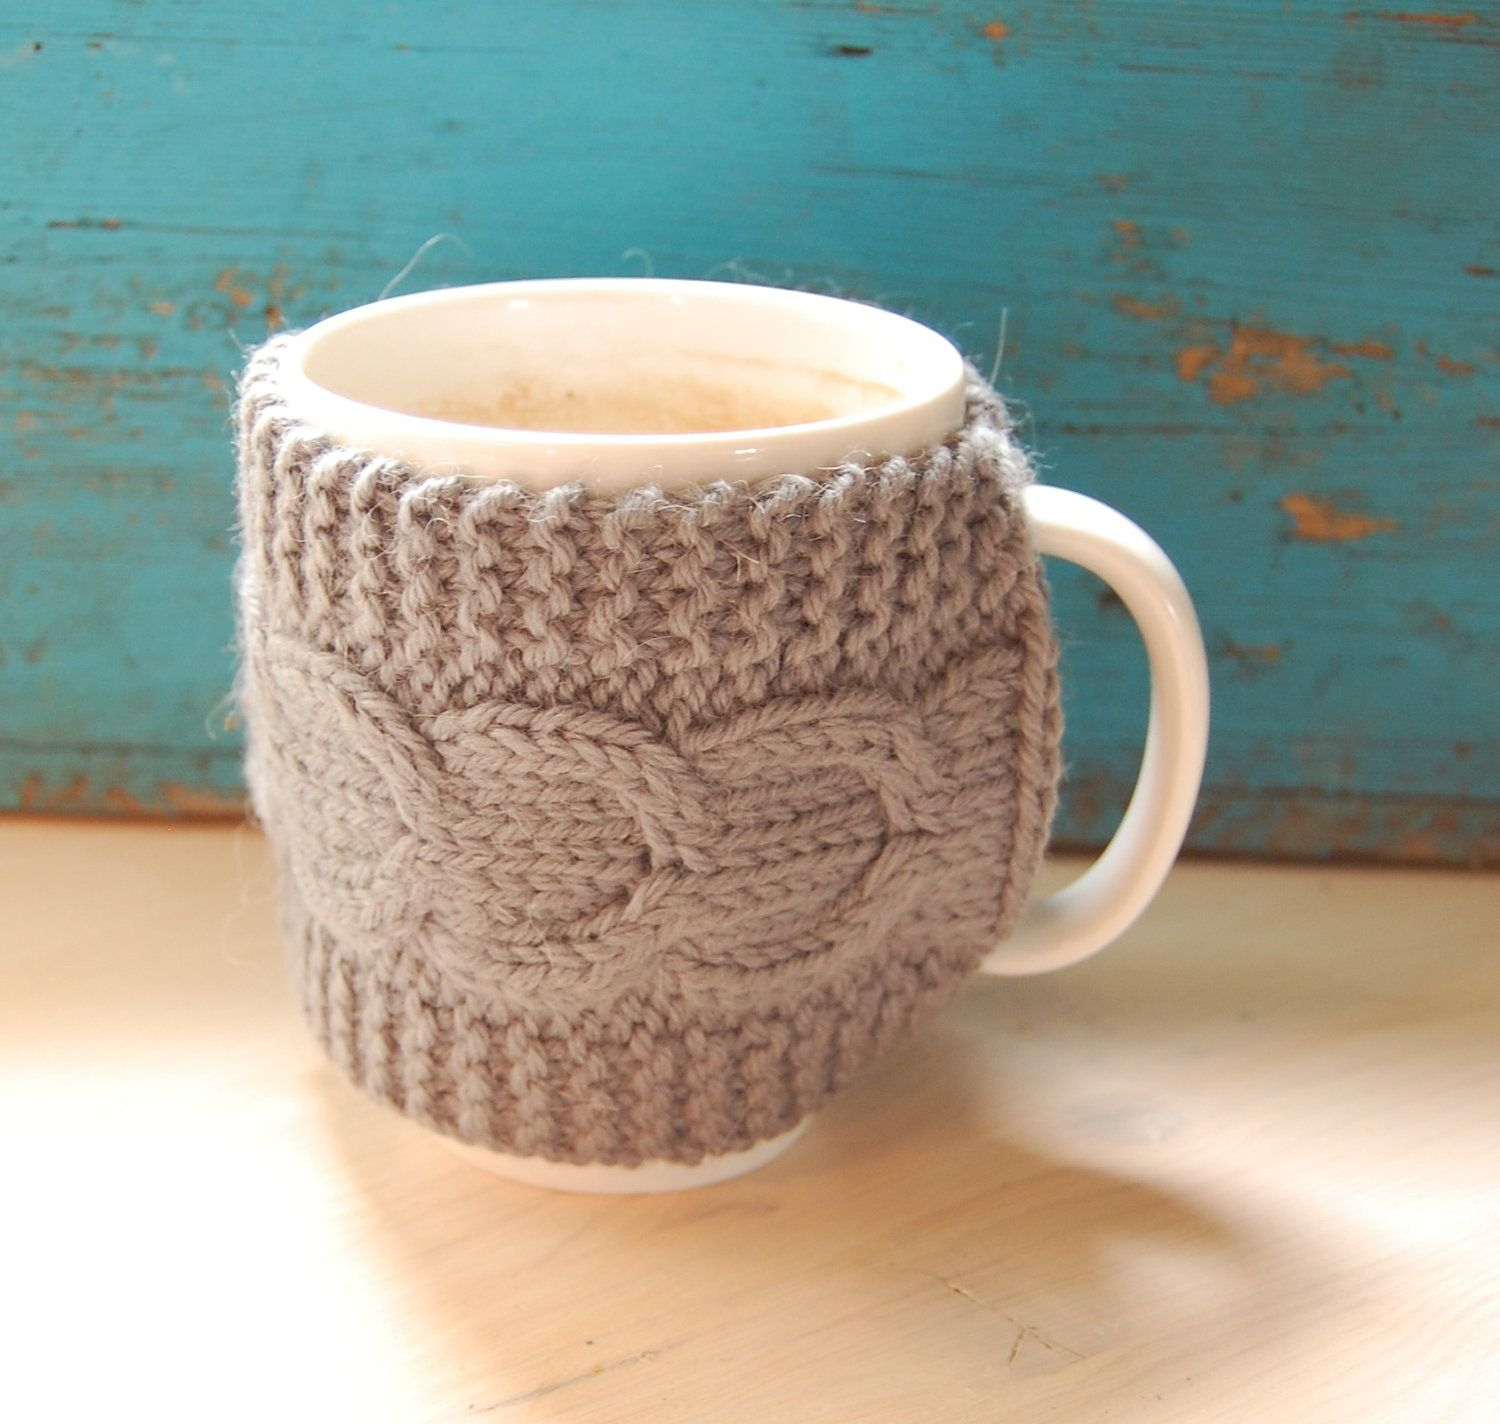 Knit coffee mug cozy with cable pattern hand knitted sewing knit coffee mug cozy with cable pattern hand knitted grey mug warmer tea cozy bankloansurffo Images